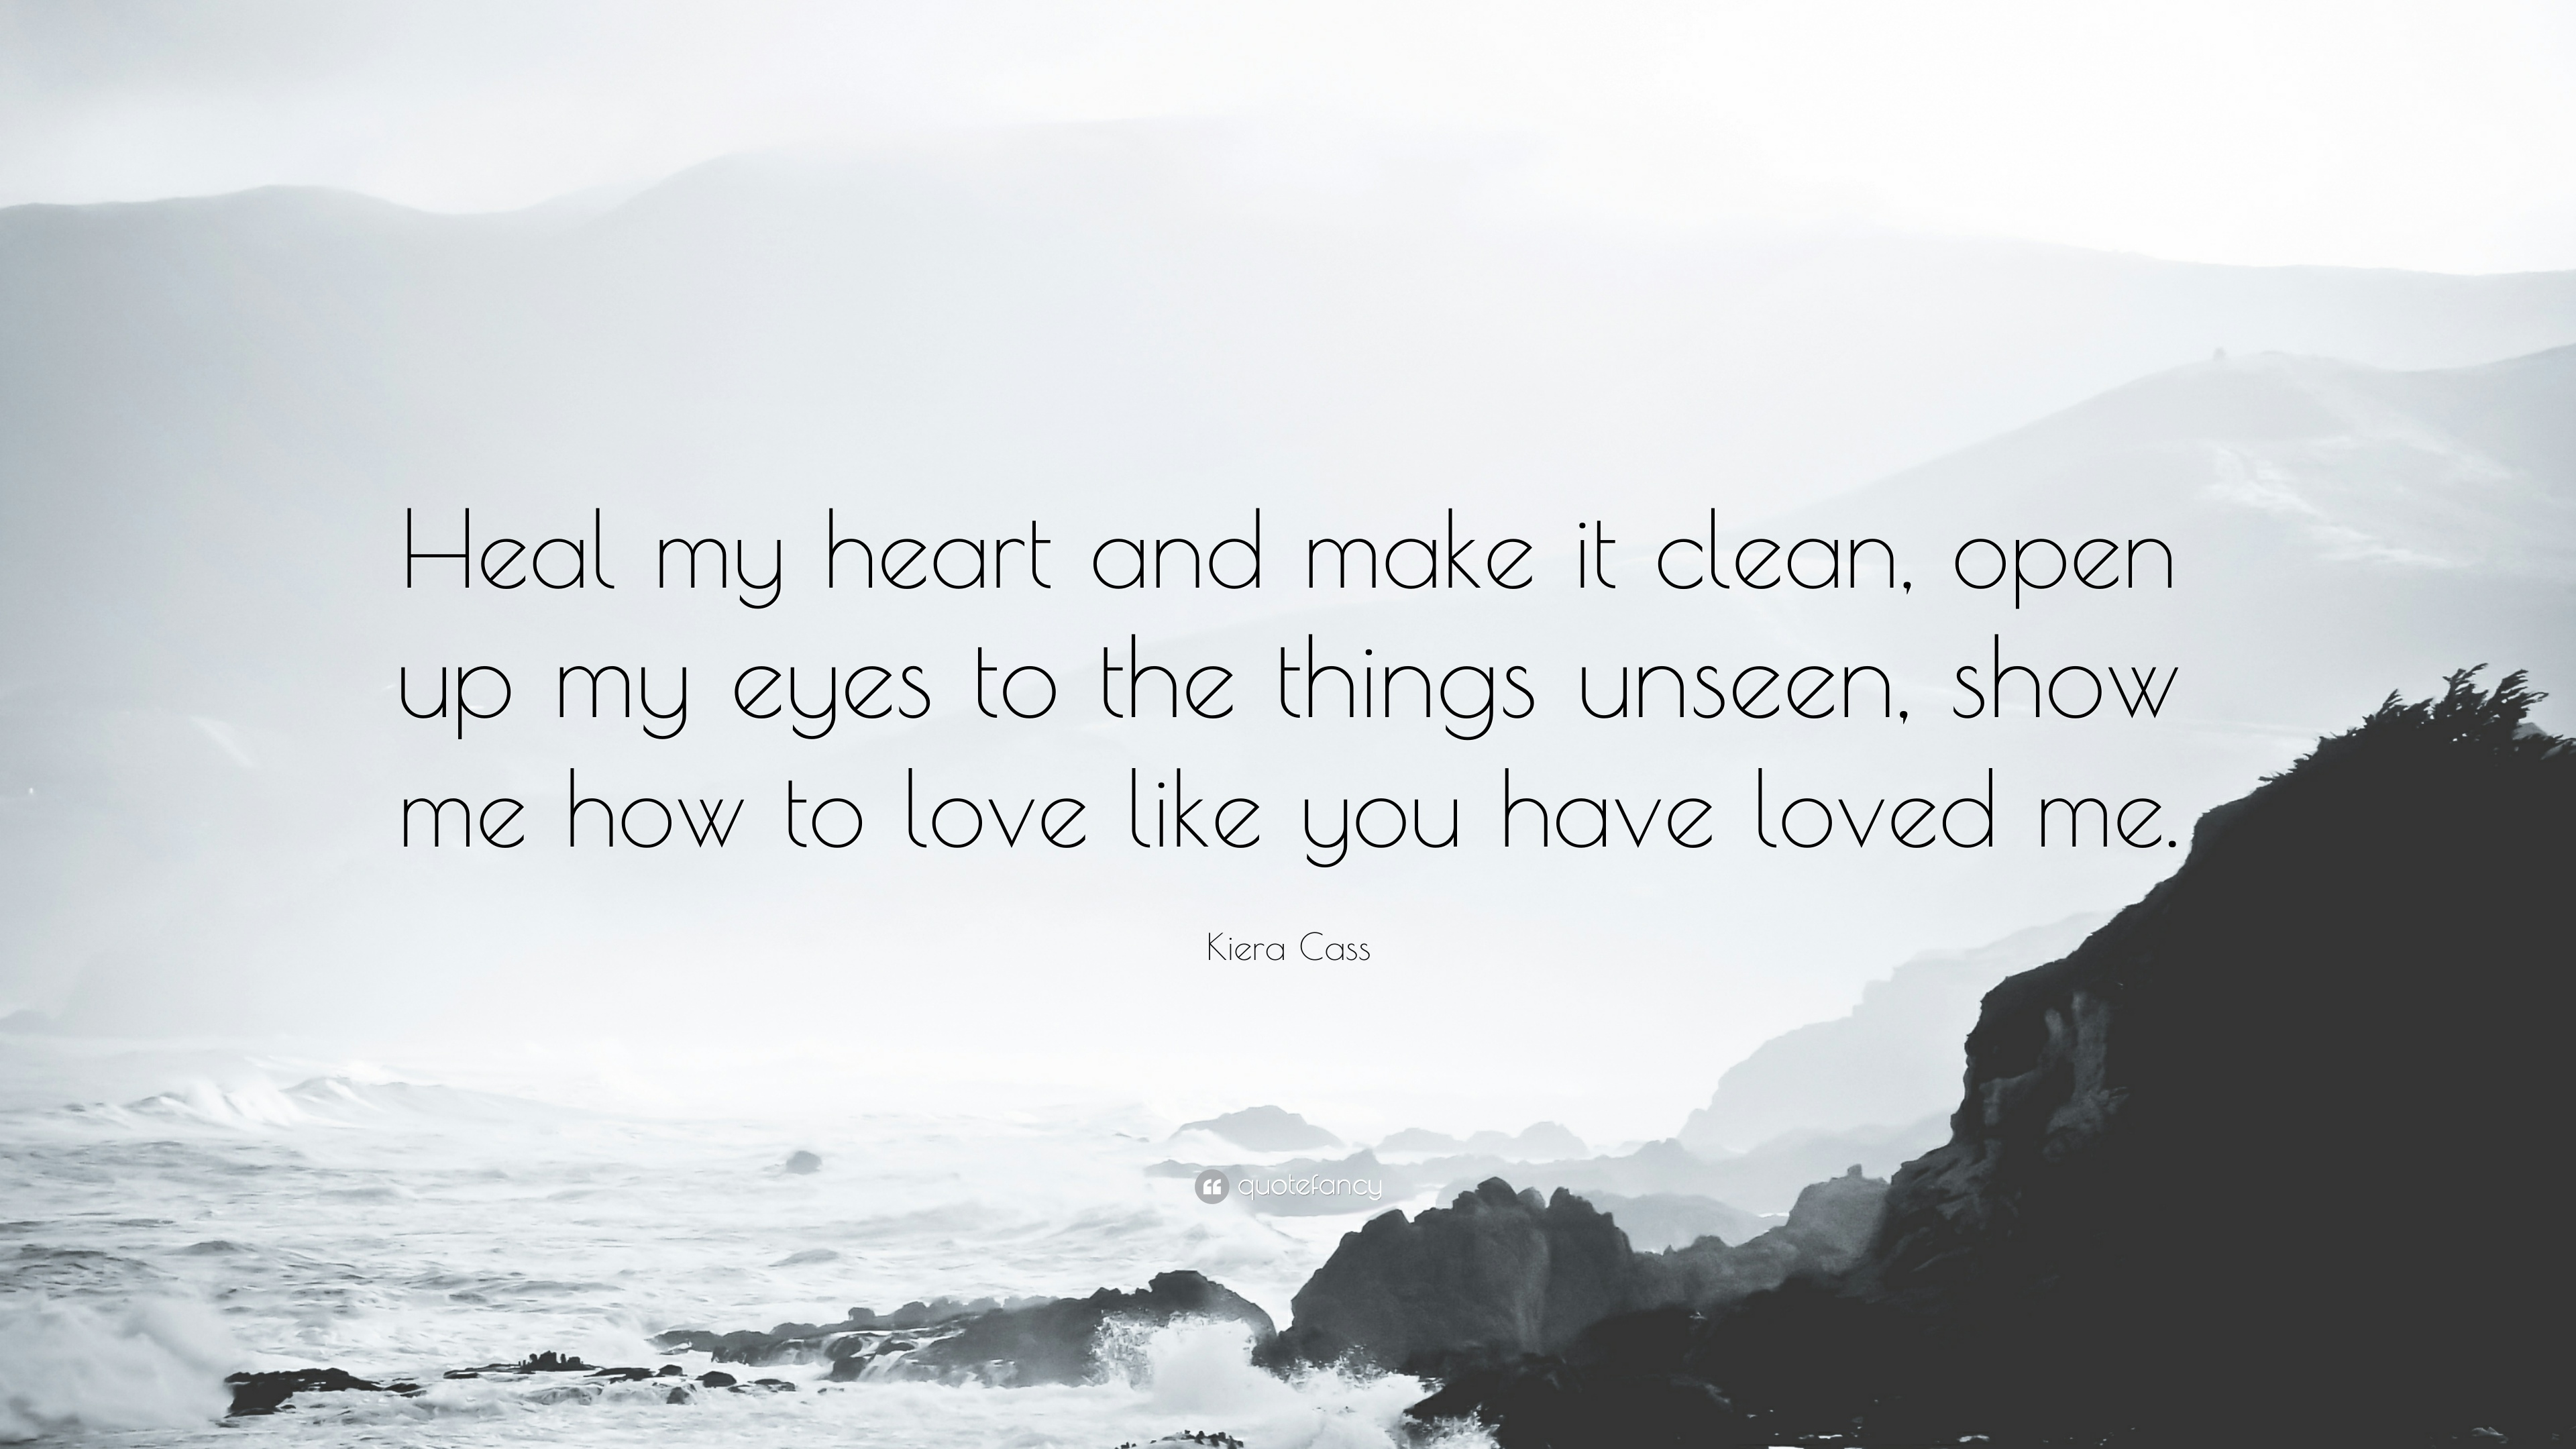 Kiera Cass Quote Heal My Heart And Make It Clean Open Up My Eyes